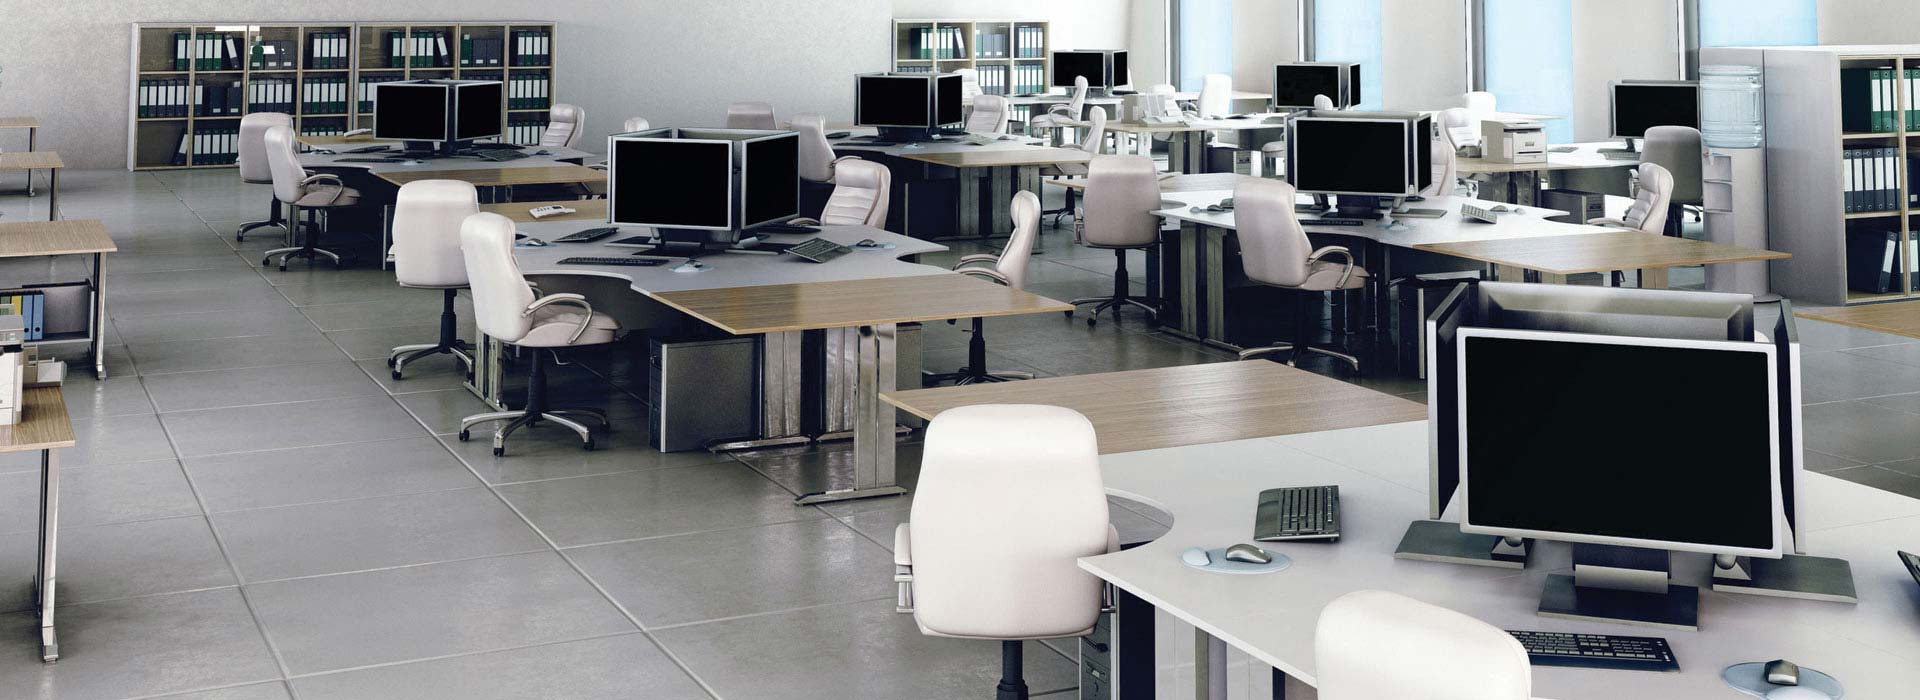 let us help you maintain your office space's computers and devices   Actions Computer Repair